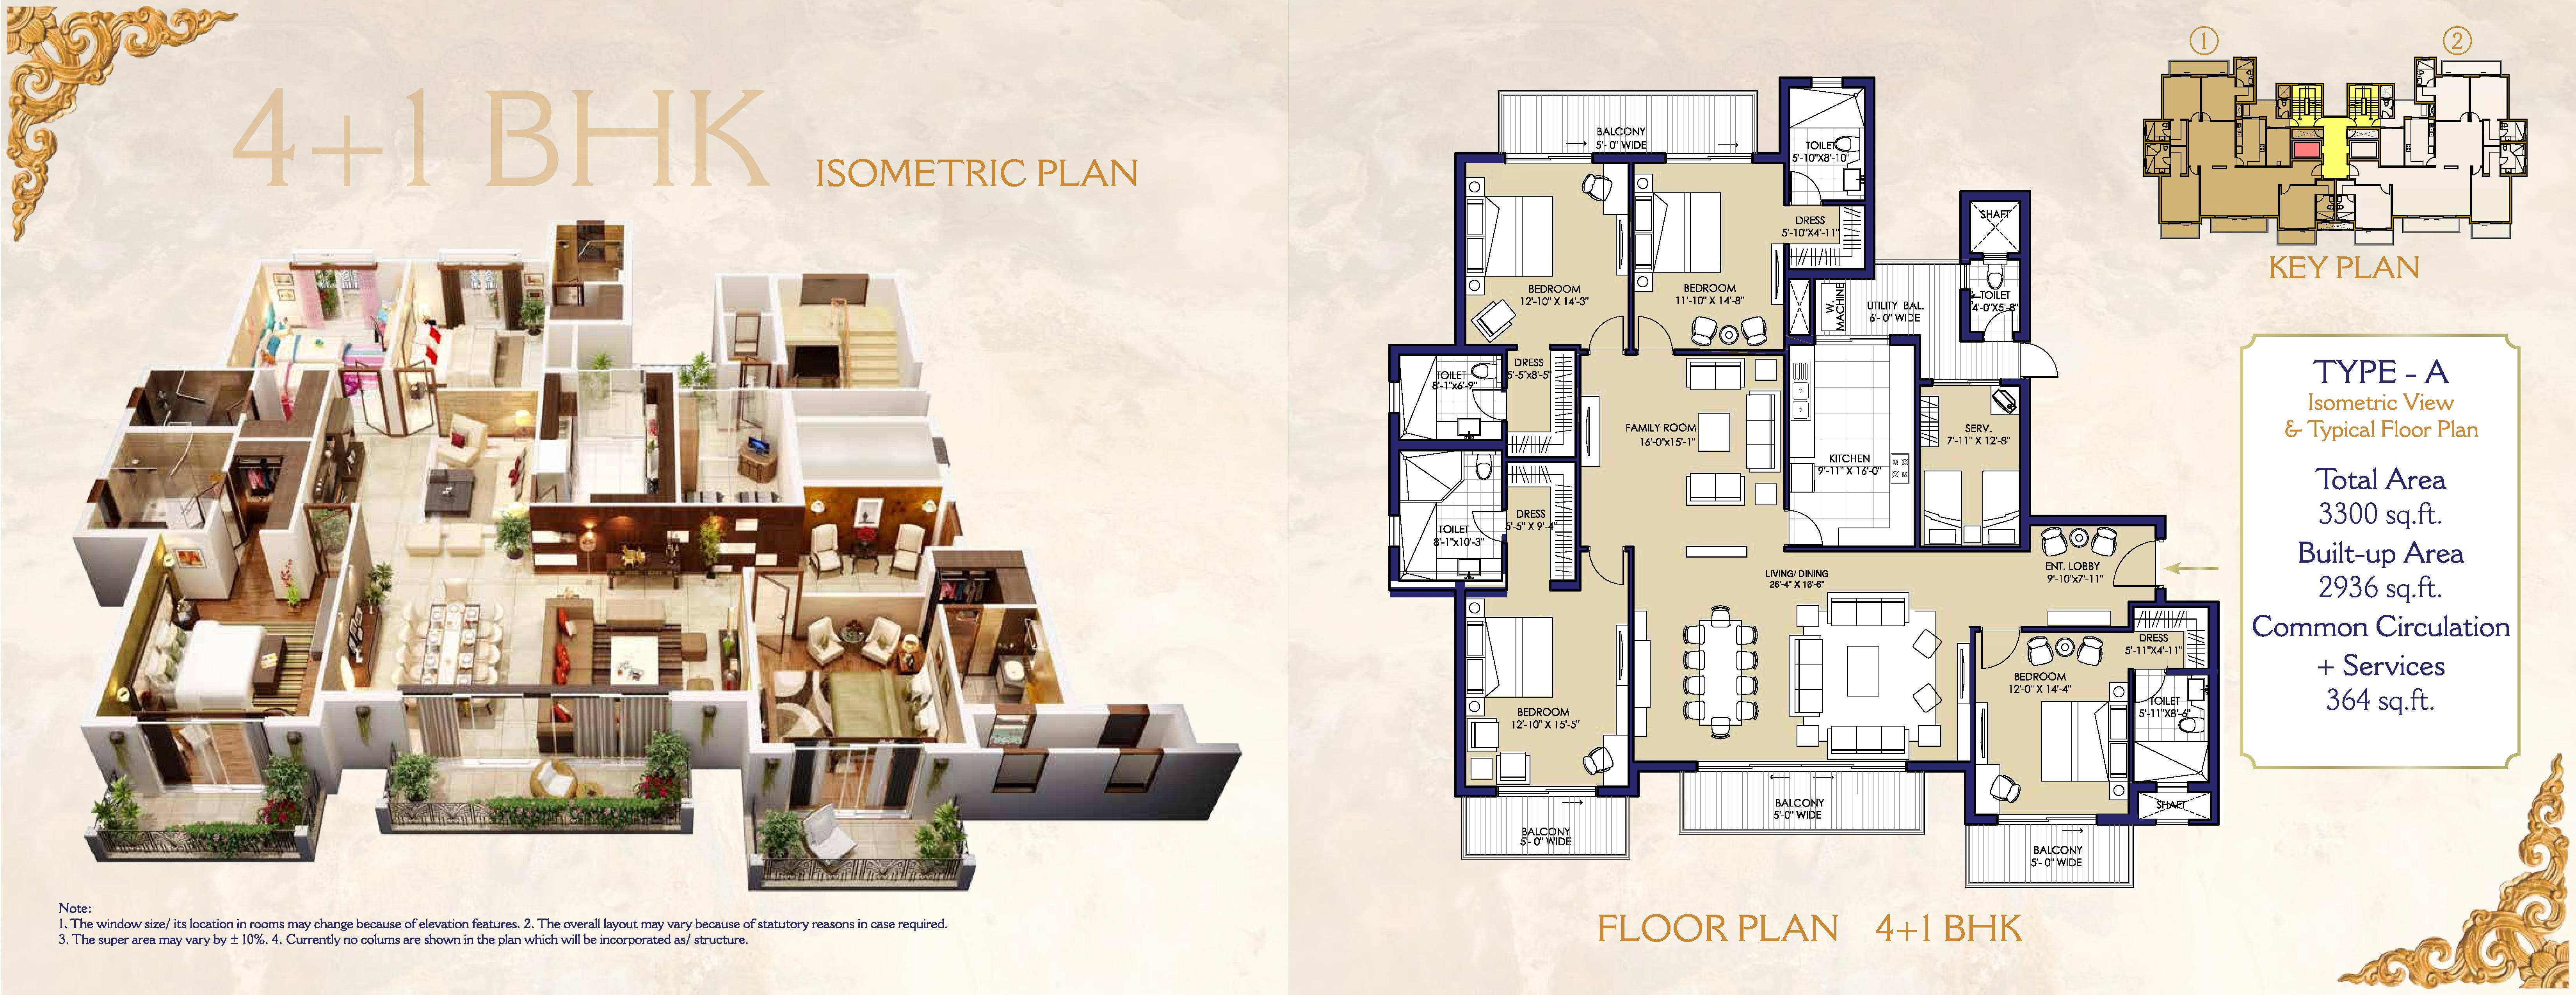 Ats casa espana mohali ats mohali casa espana ats for Room planning website